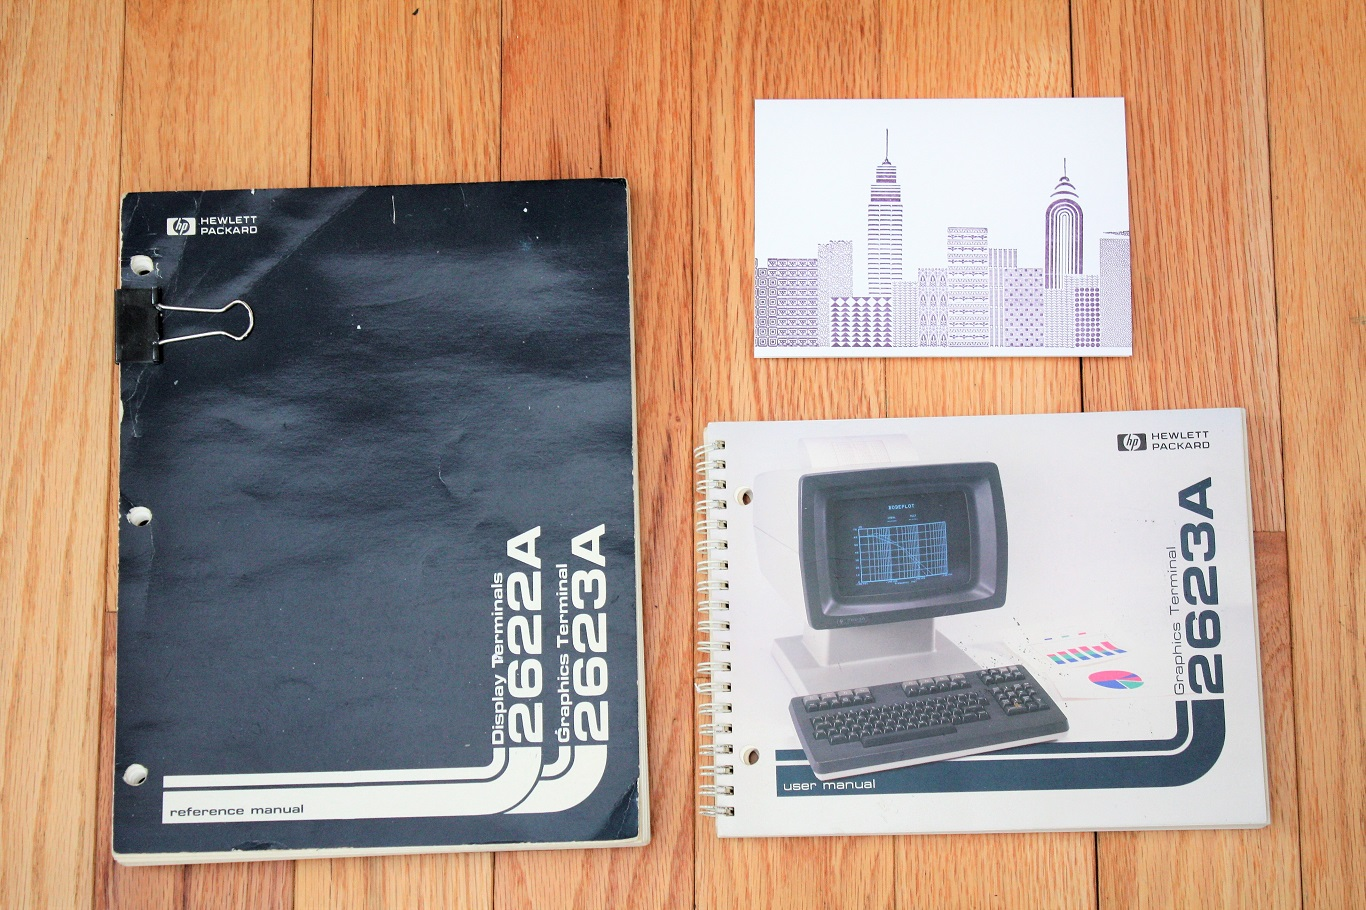 Hewlett Packard 2623A - manuals and Secret Santa card